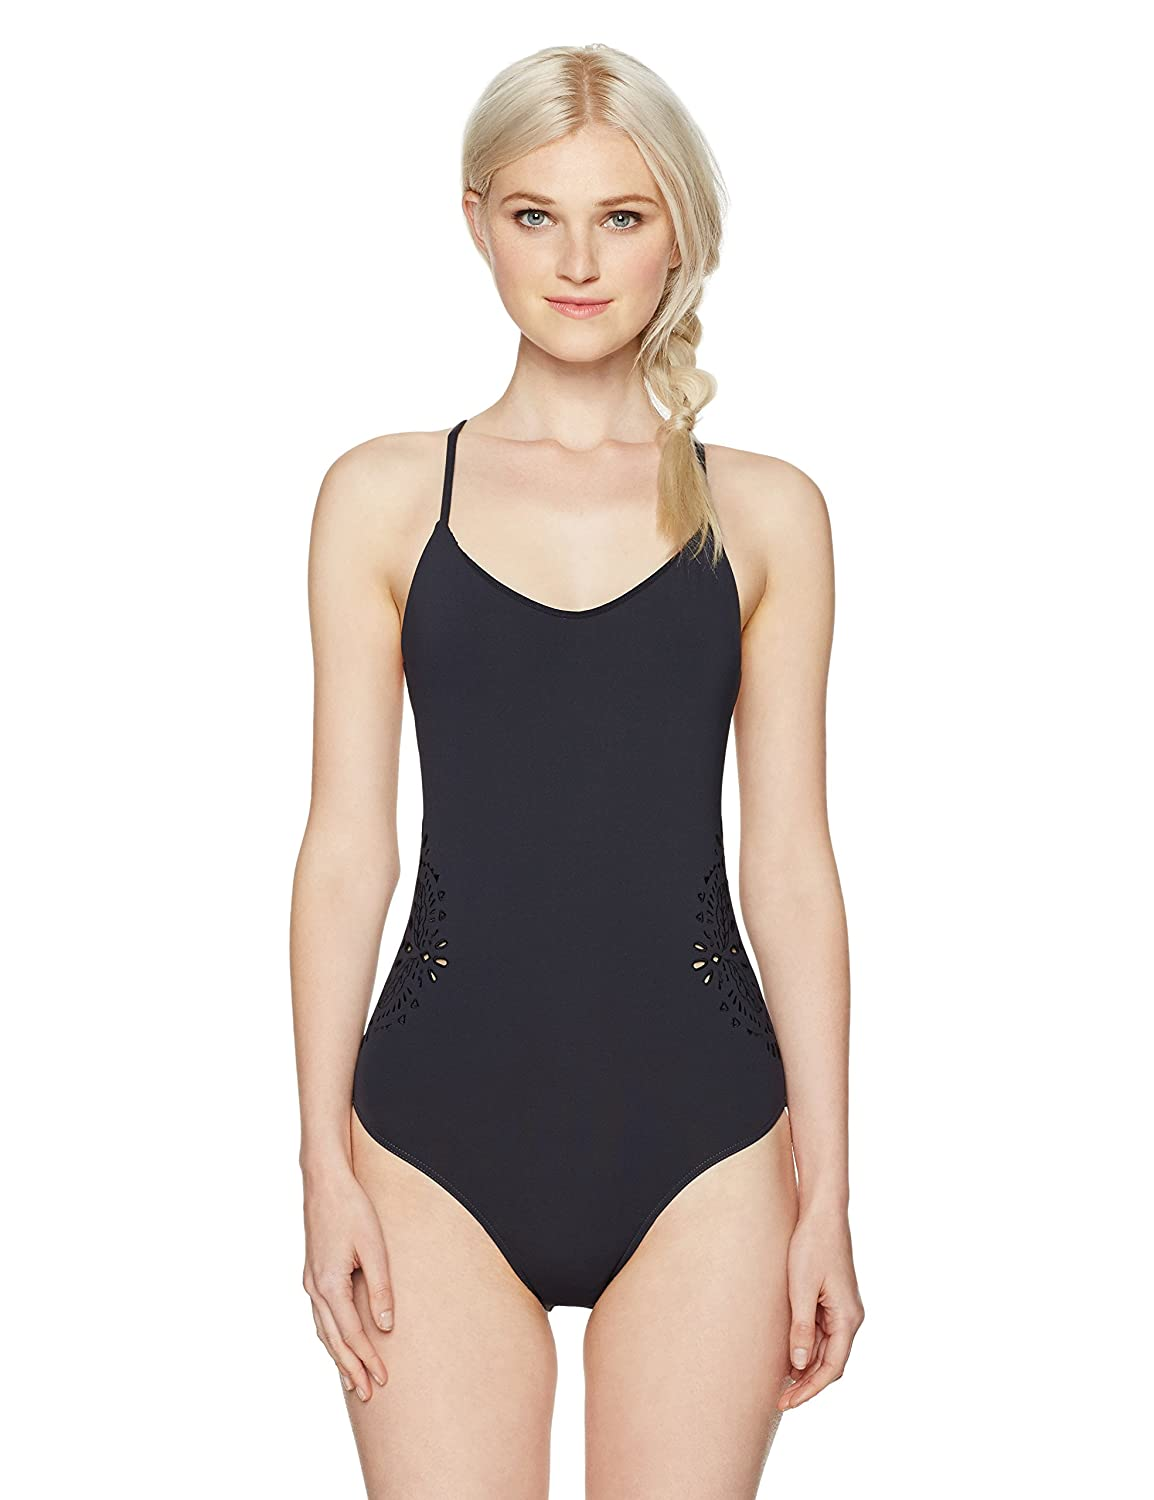 Billabong Women's Embroidered and Laser Cut One Piece Swimsuit Billabong Juniors Swimwear X105KCUT